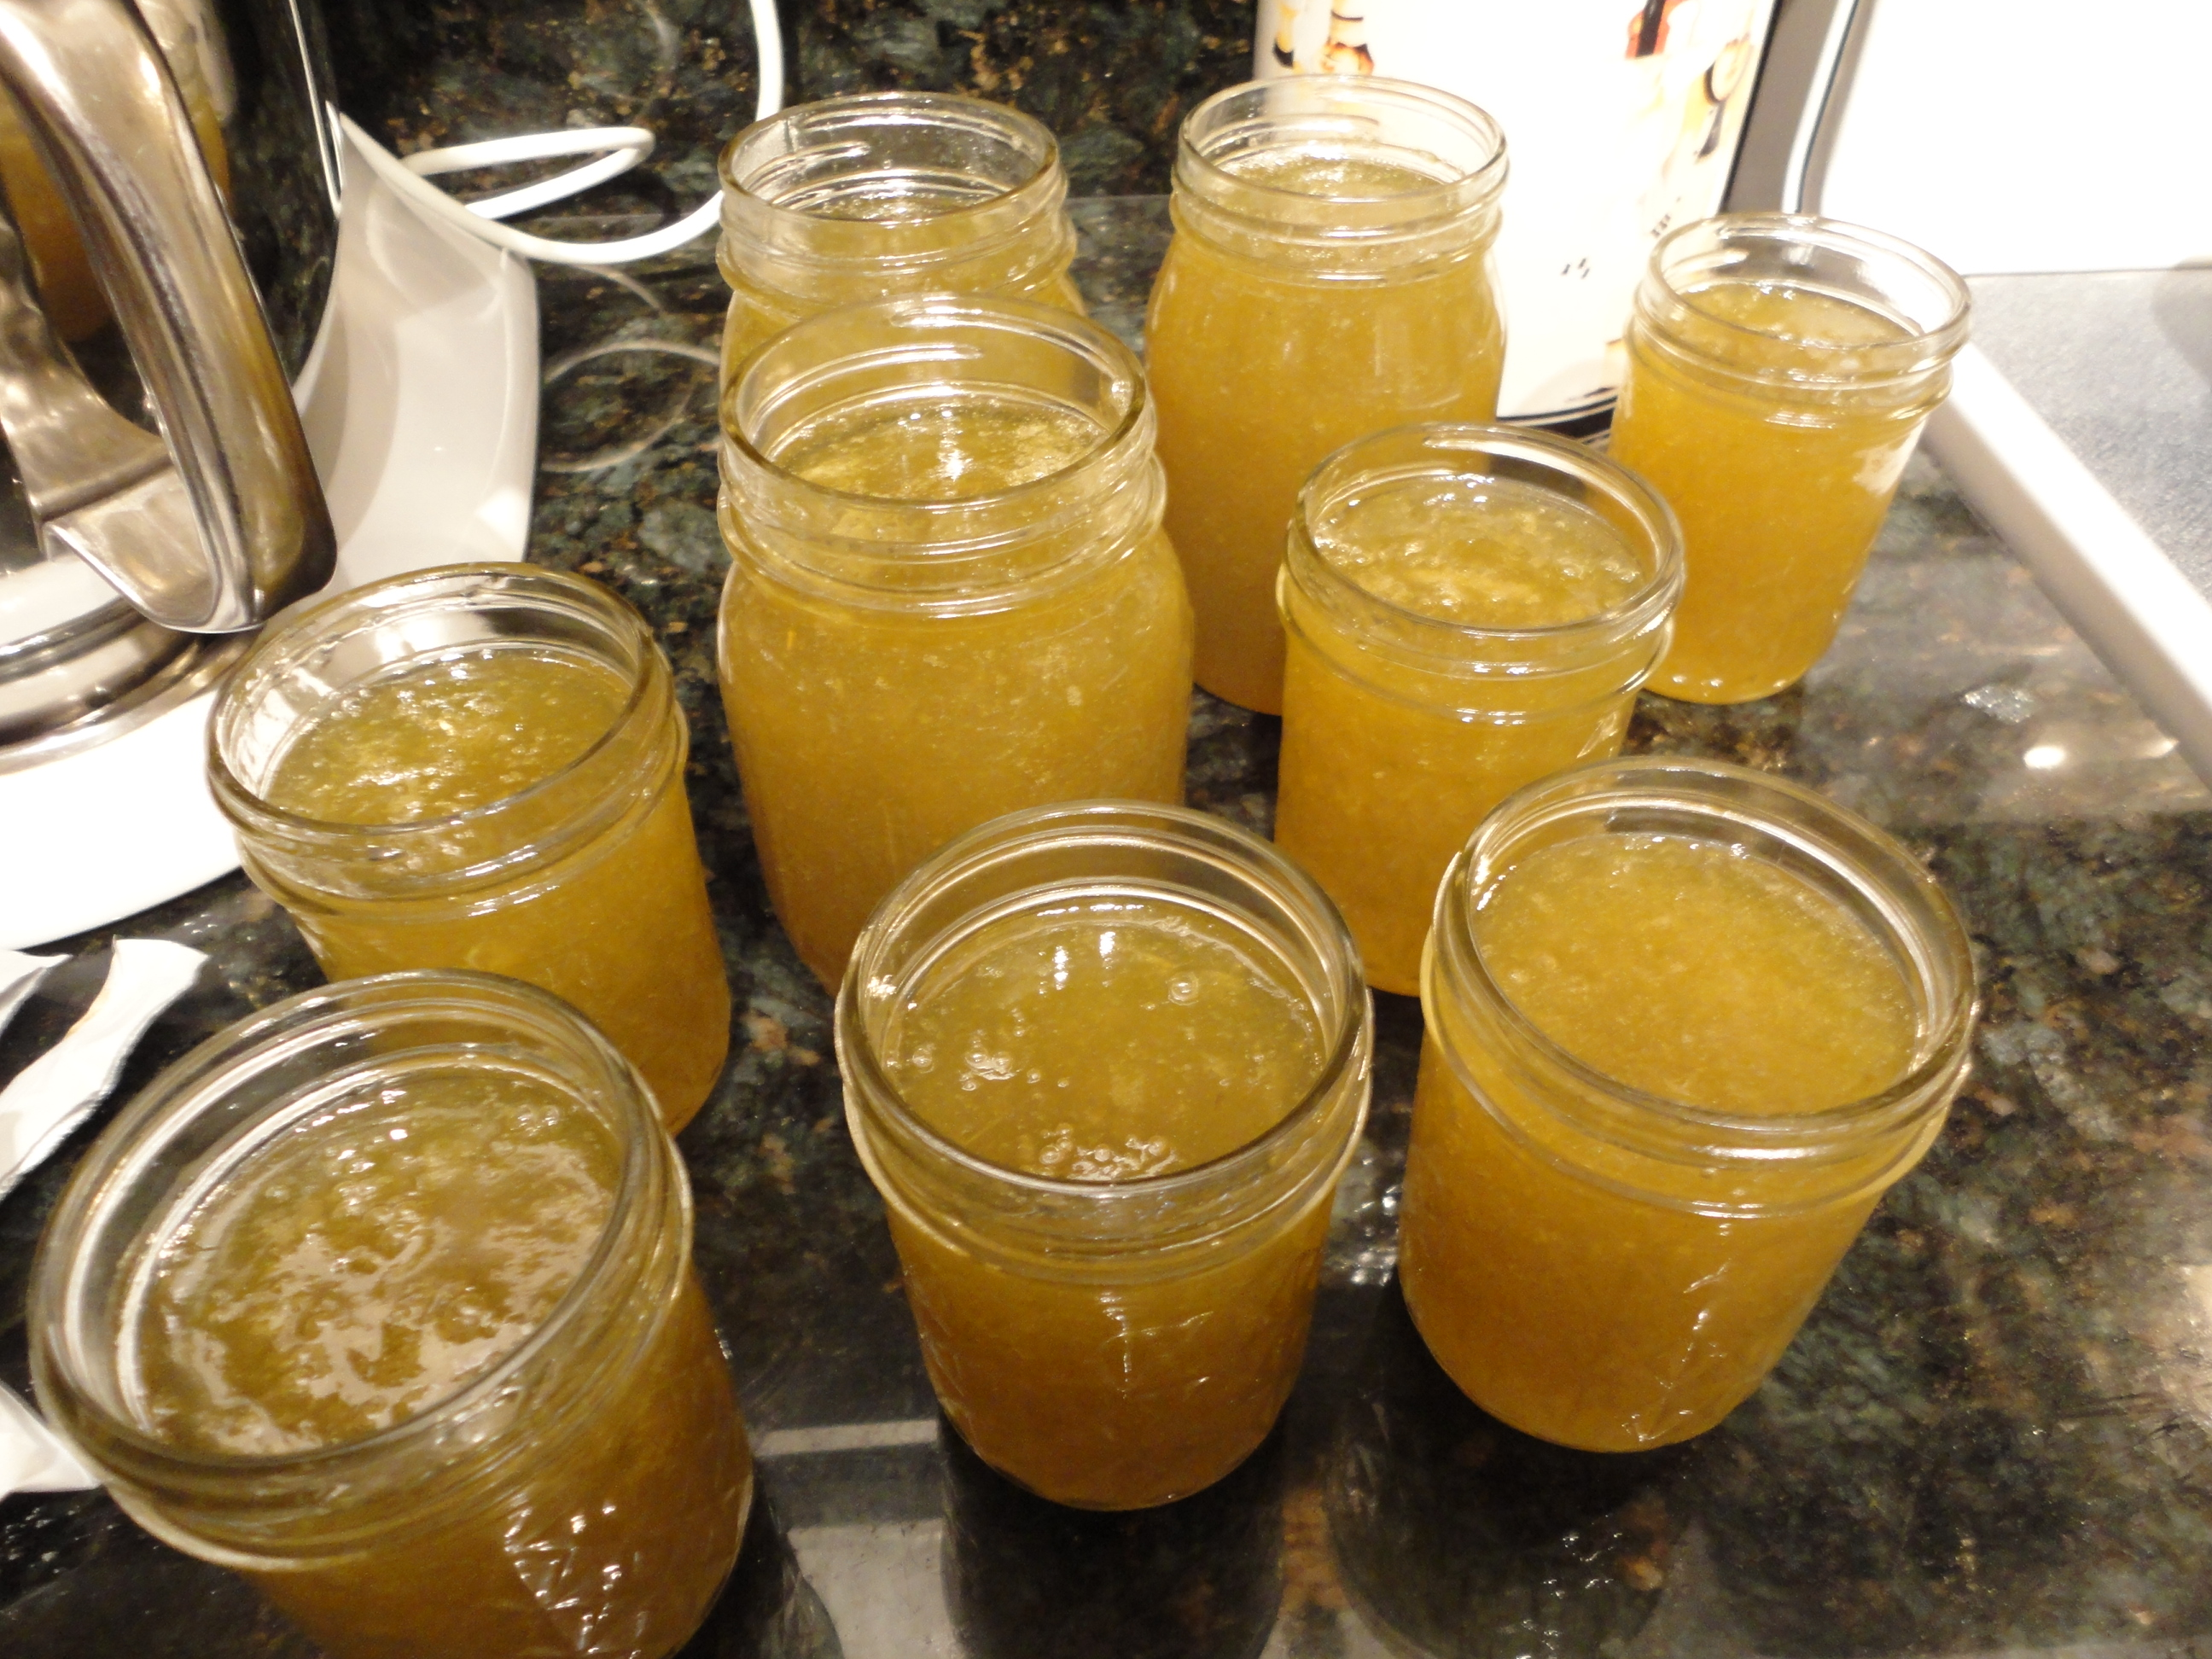 Homemade Garden Grape Jam Welch39s Take Note We Are Not